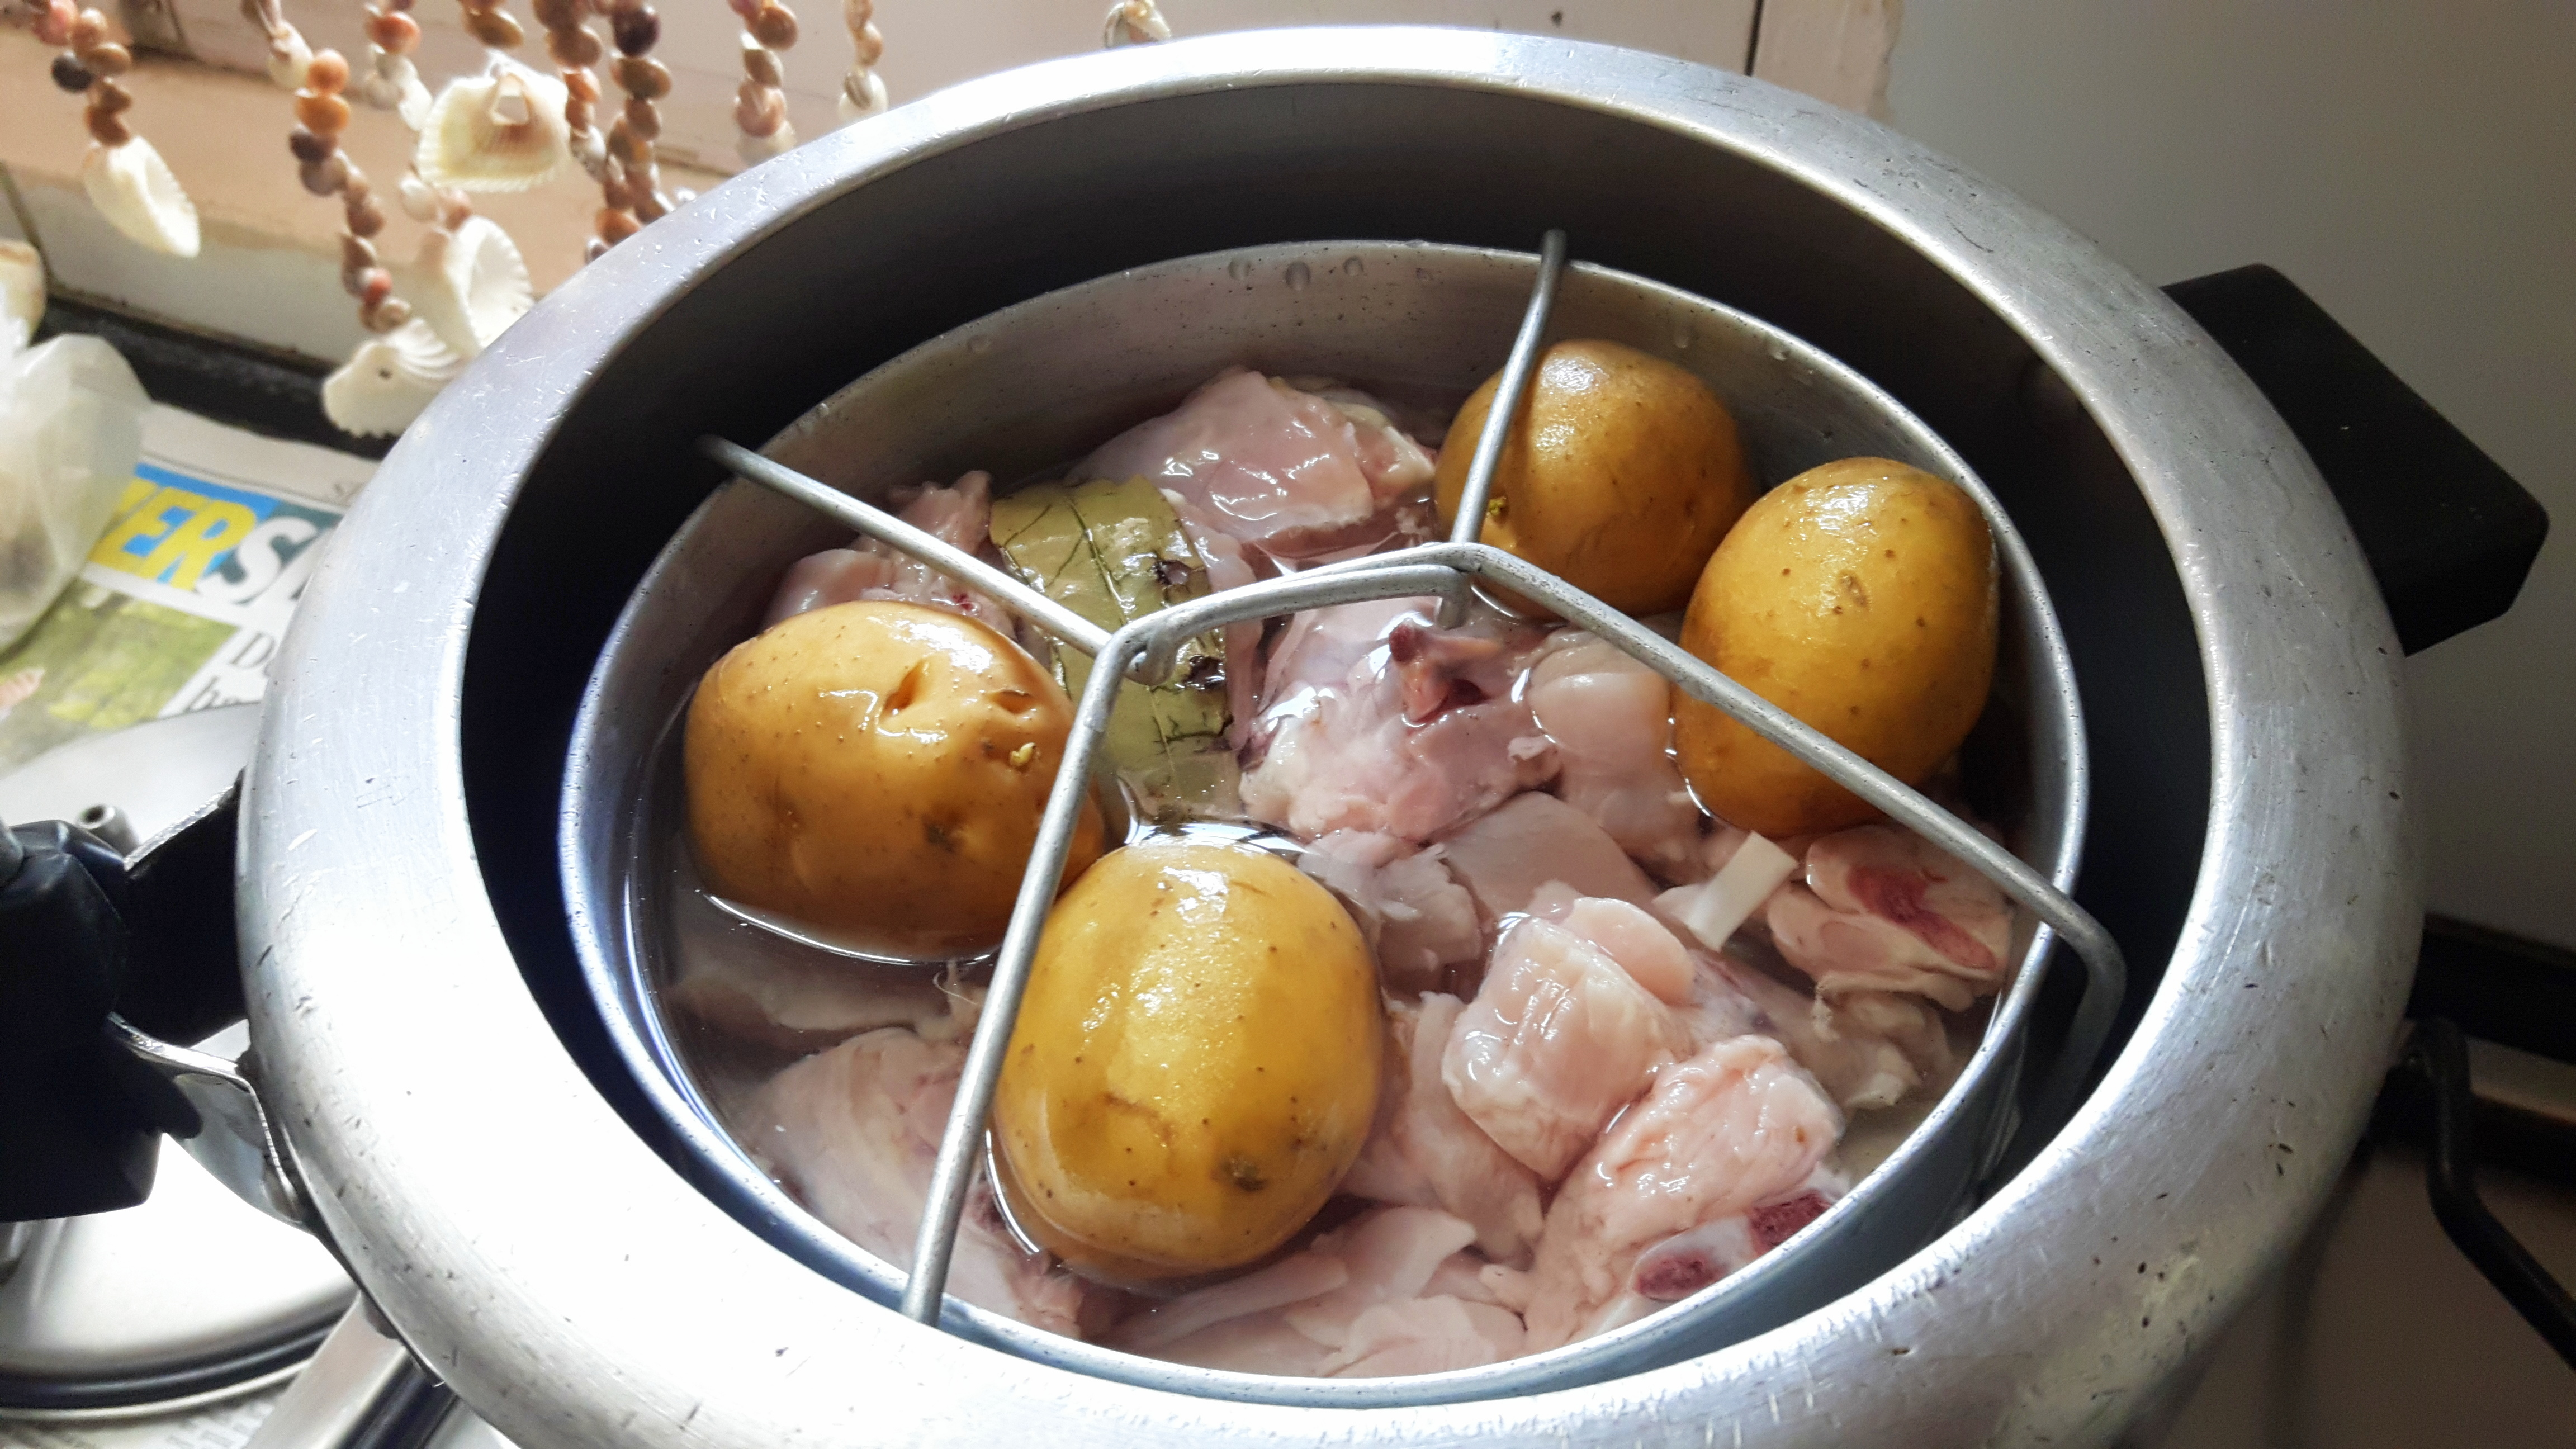 Boil the peeled potatoes with chicken